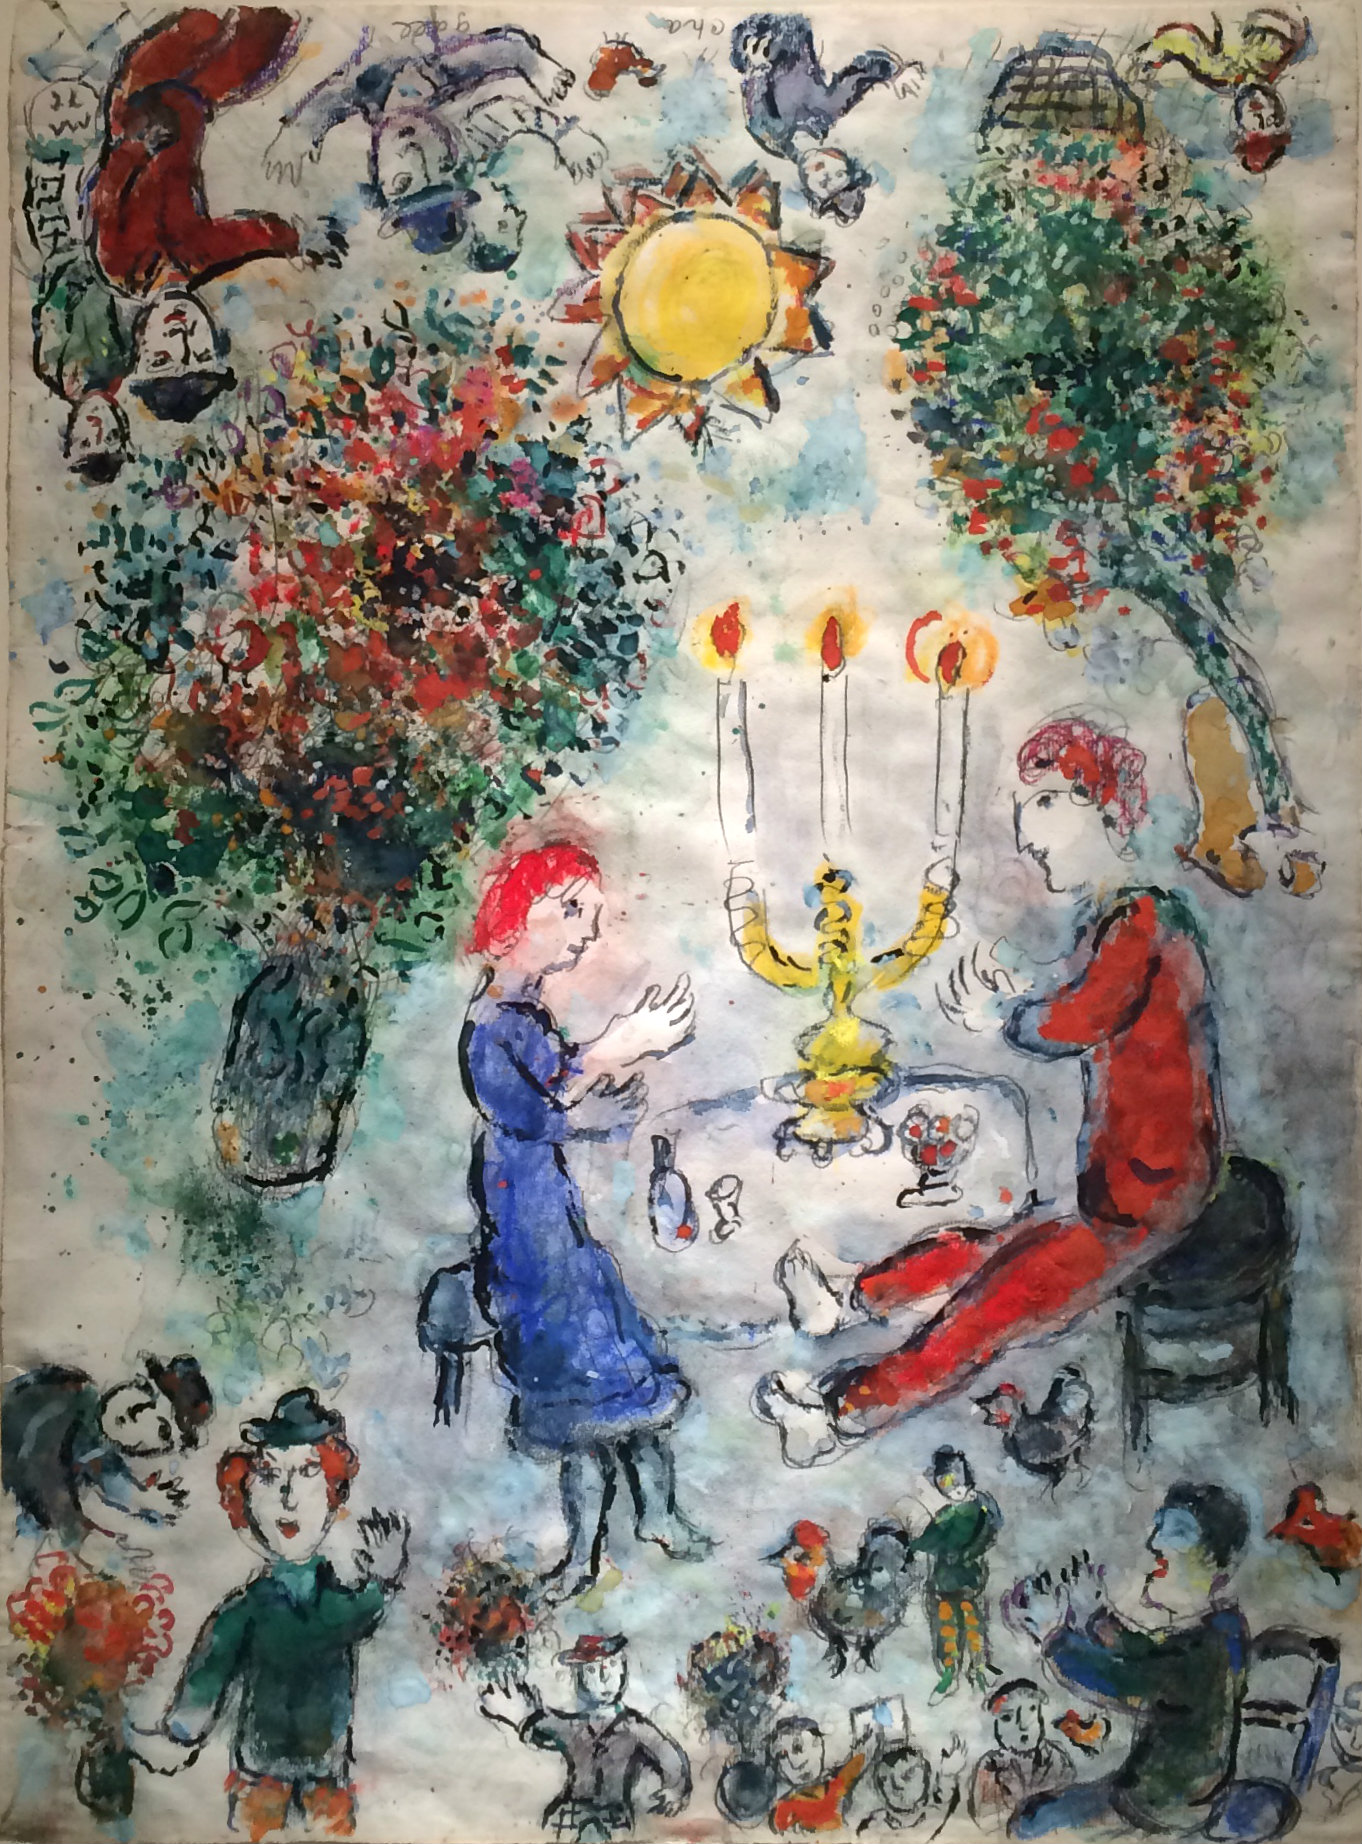 marc chagall french Chagall combined a variety of sources, including aspects of jewish, russian, and french culture and images from christian art, in his own whimsical art, based on his reinvented biography literature marc chagall, moscow, 1920 tempura and gouache on canvas panel from the mural on the four arts created by chagall.